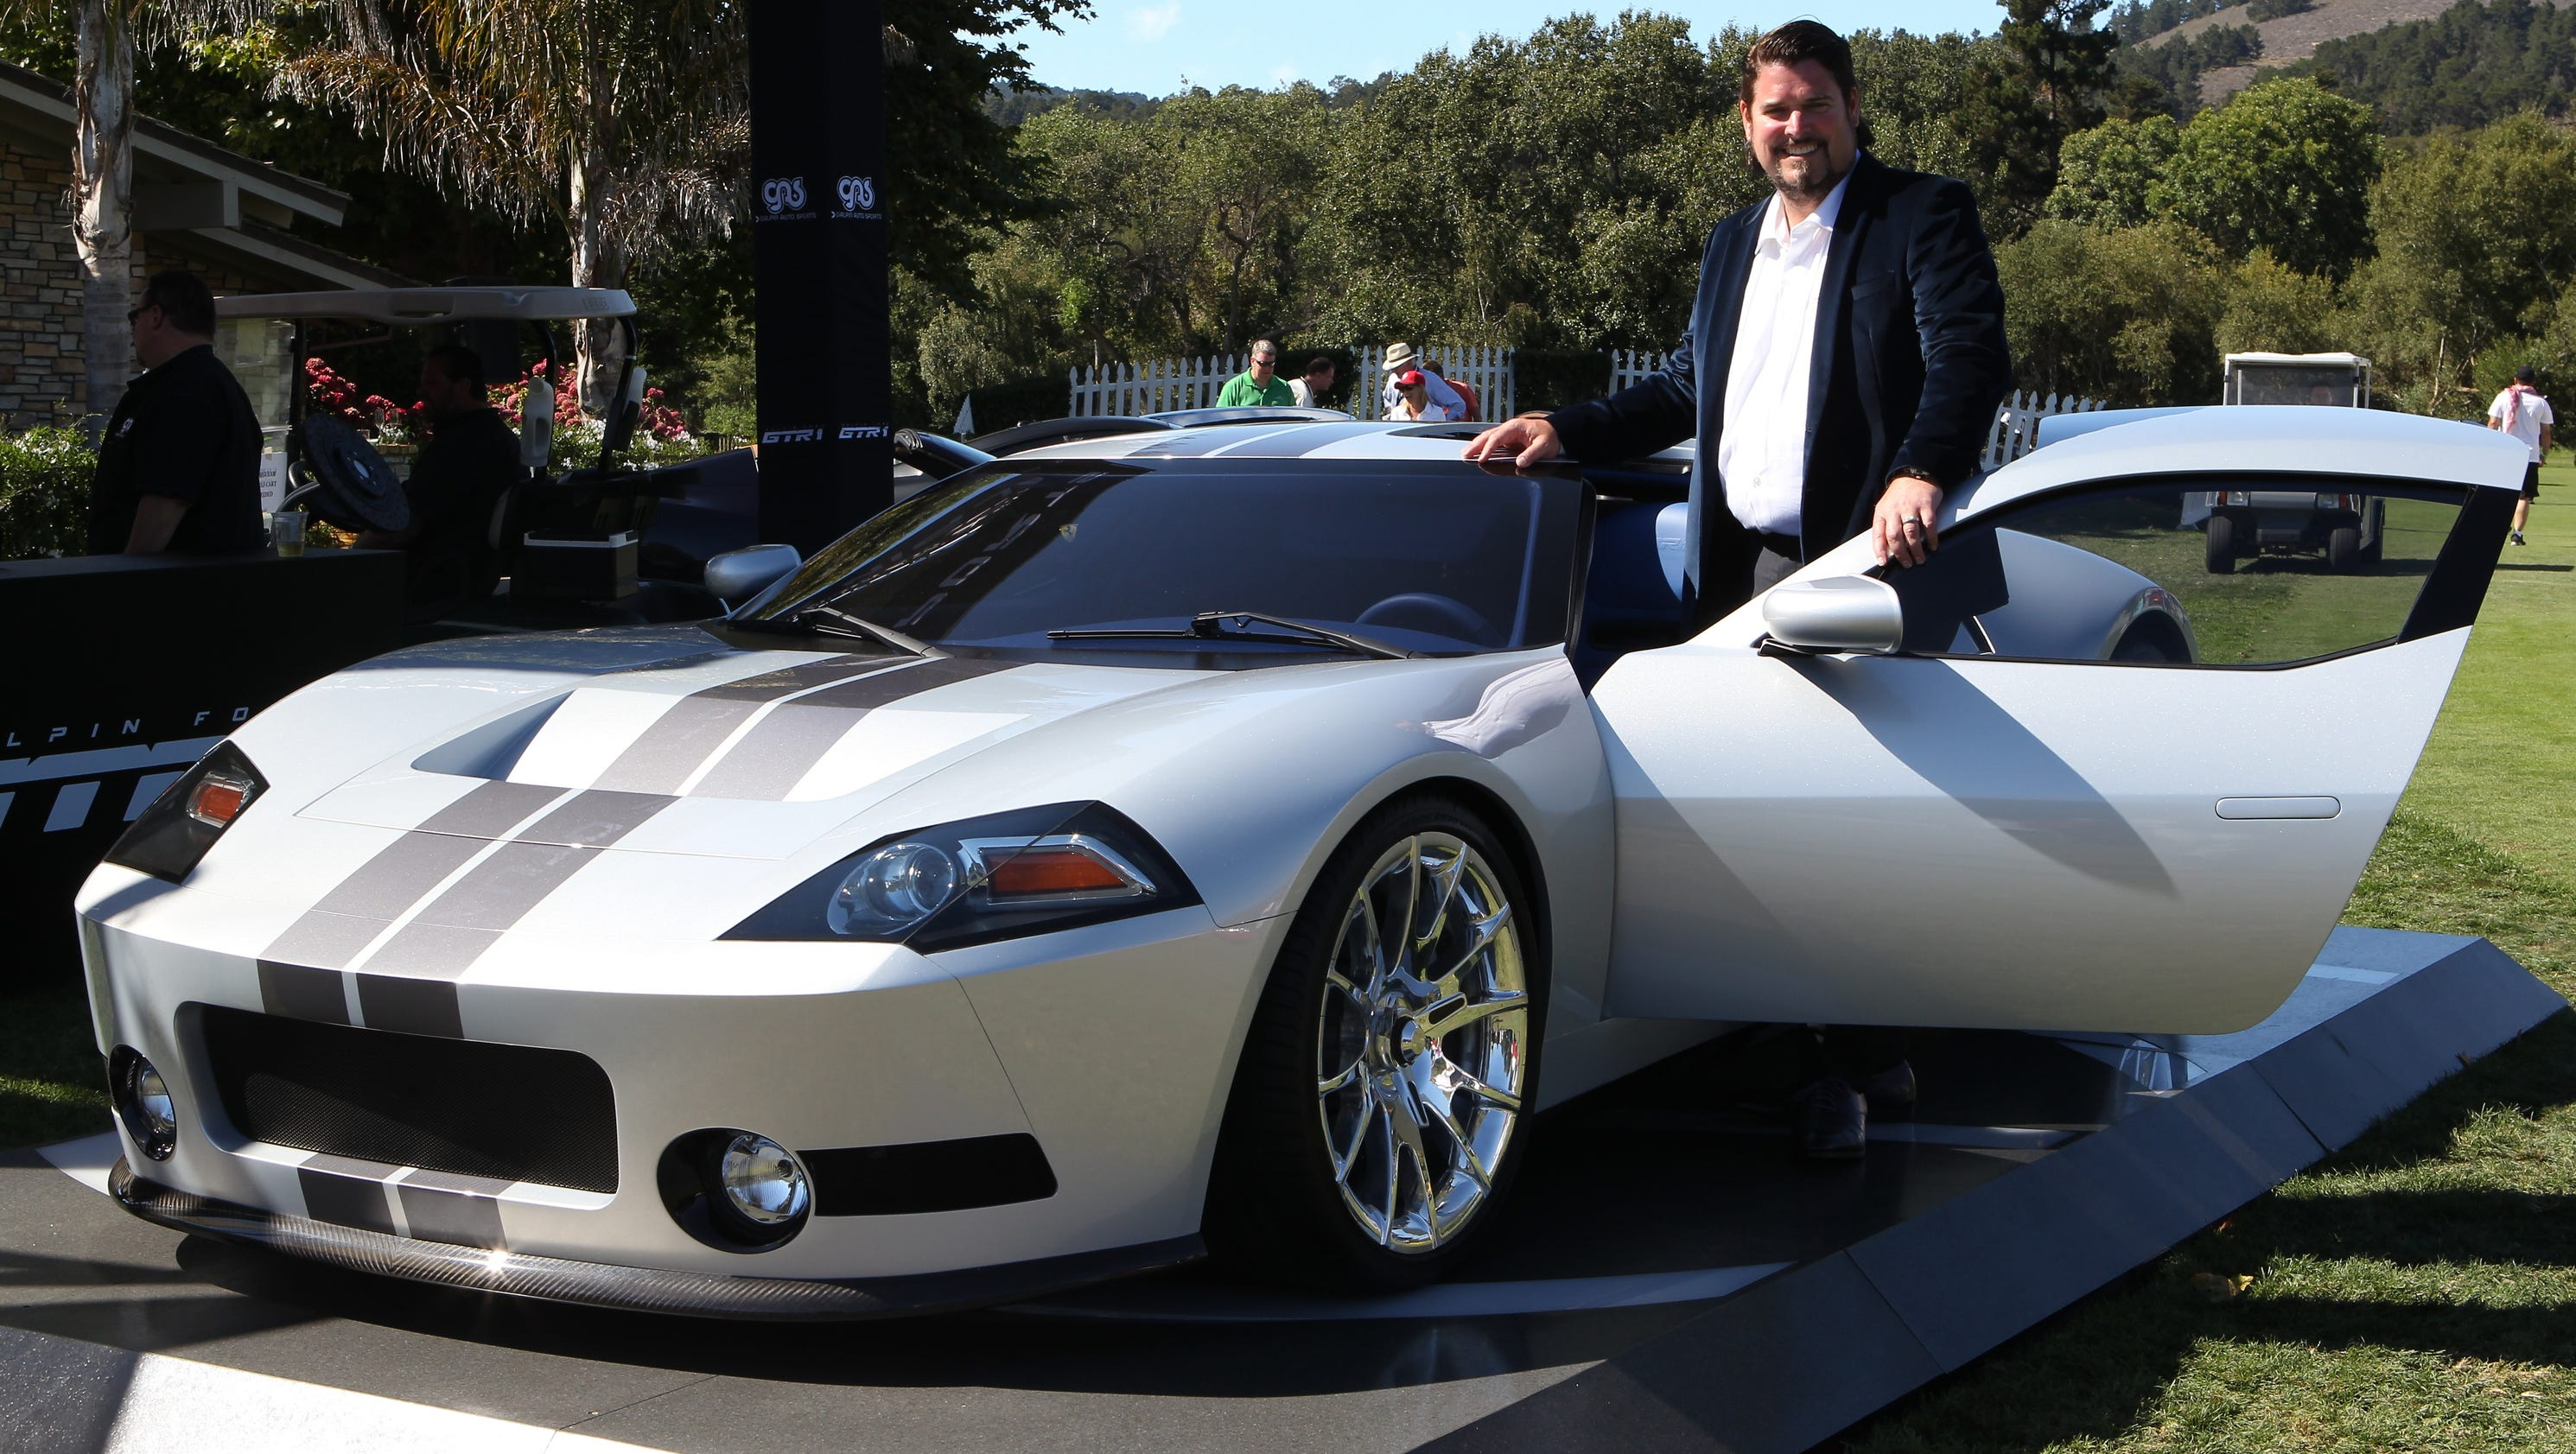 New supercar picks up where Ford GT left off